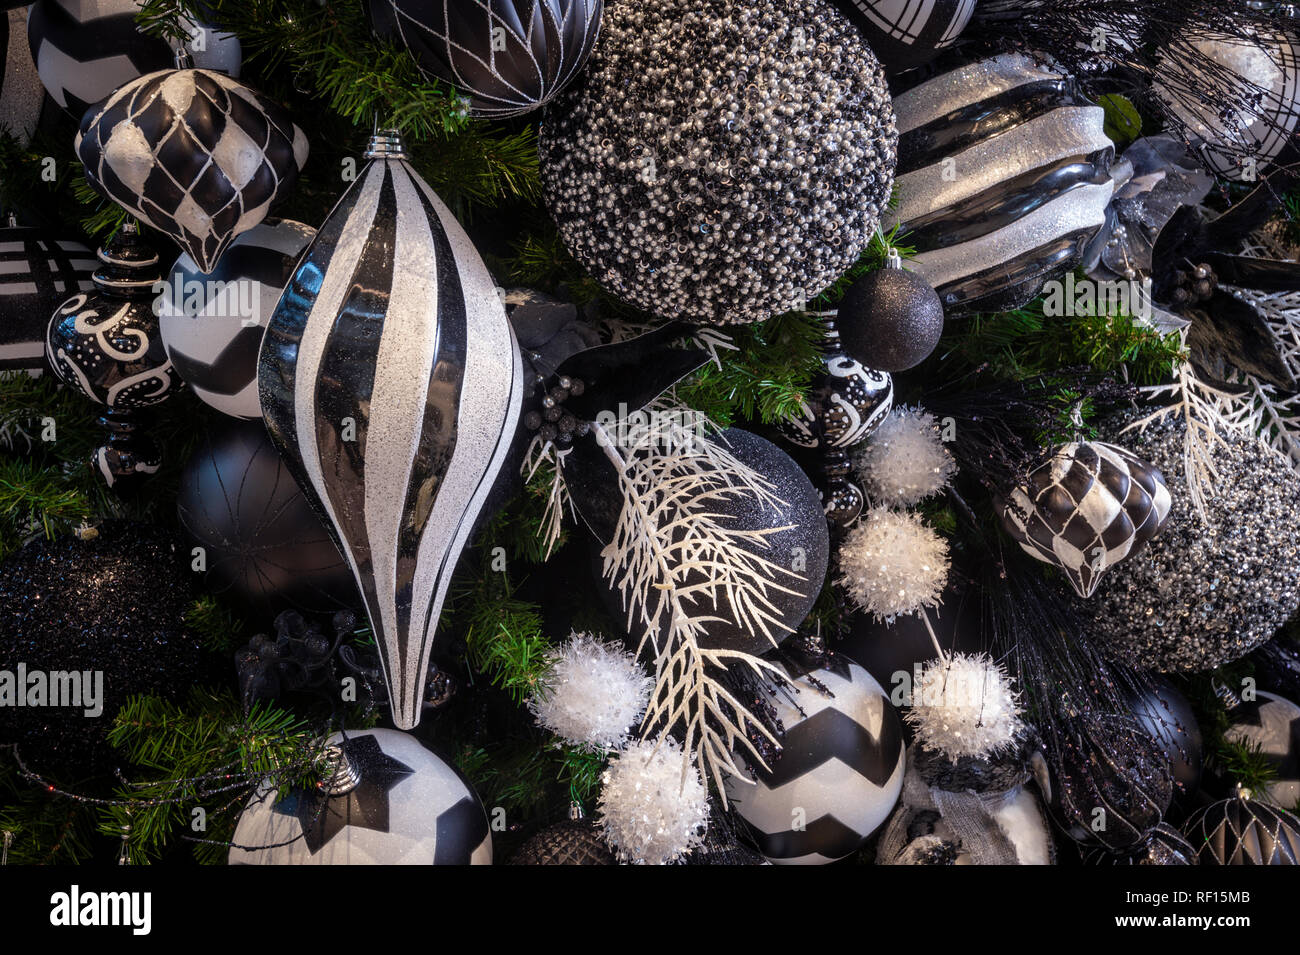 Ornate Christmas Tree Decorations Detail - Stock Image